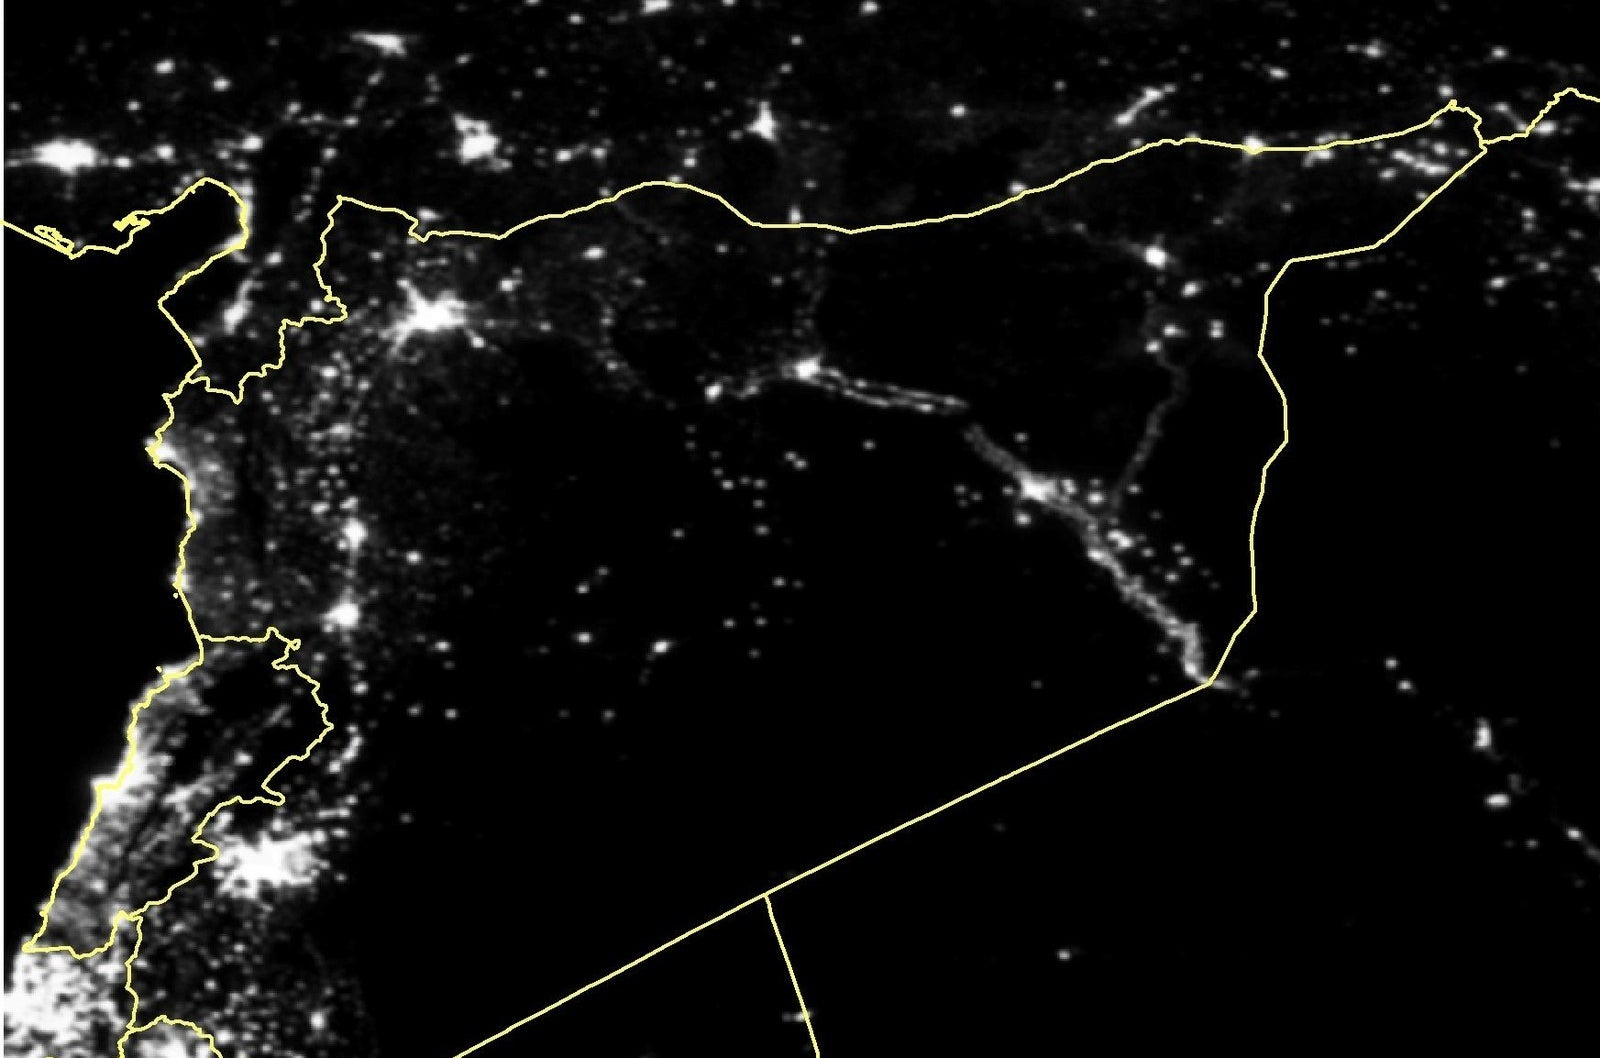 Average night lights in Syria in March 2011